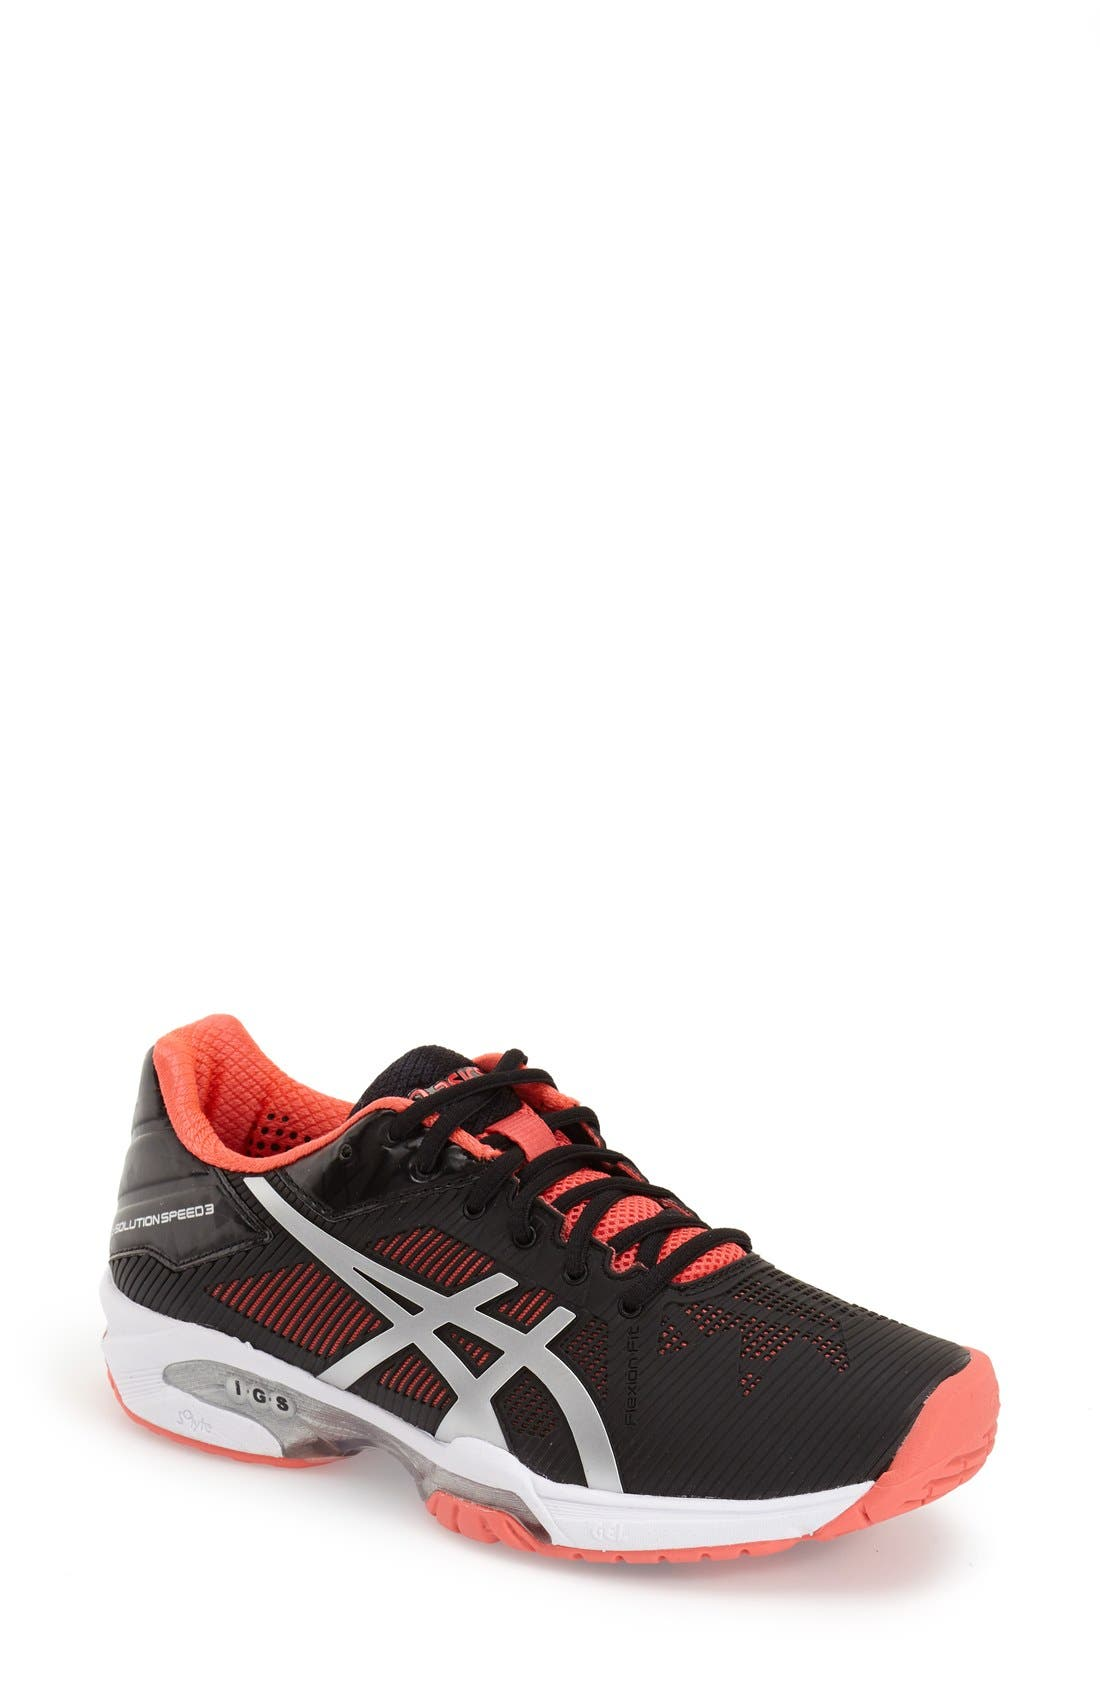 ASICS<SUP>®</SUP> 'GEL-Solution Speed 3' Tennis Shoe, Main, color, 001